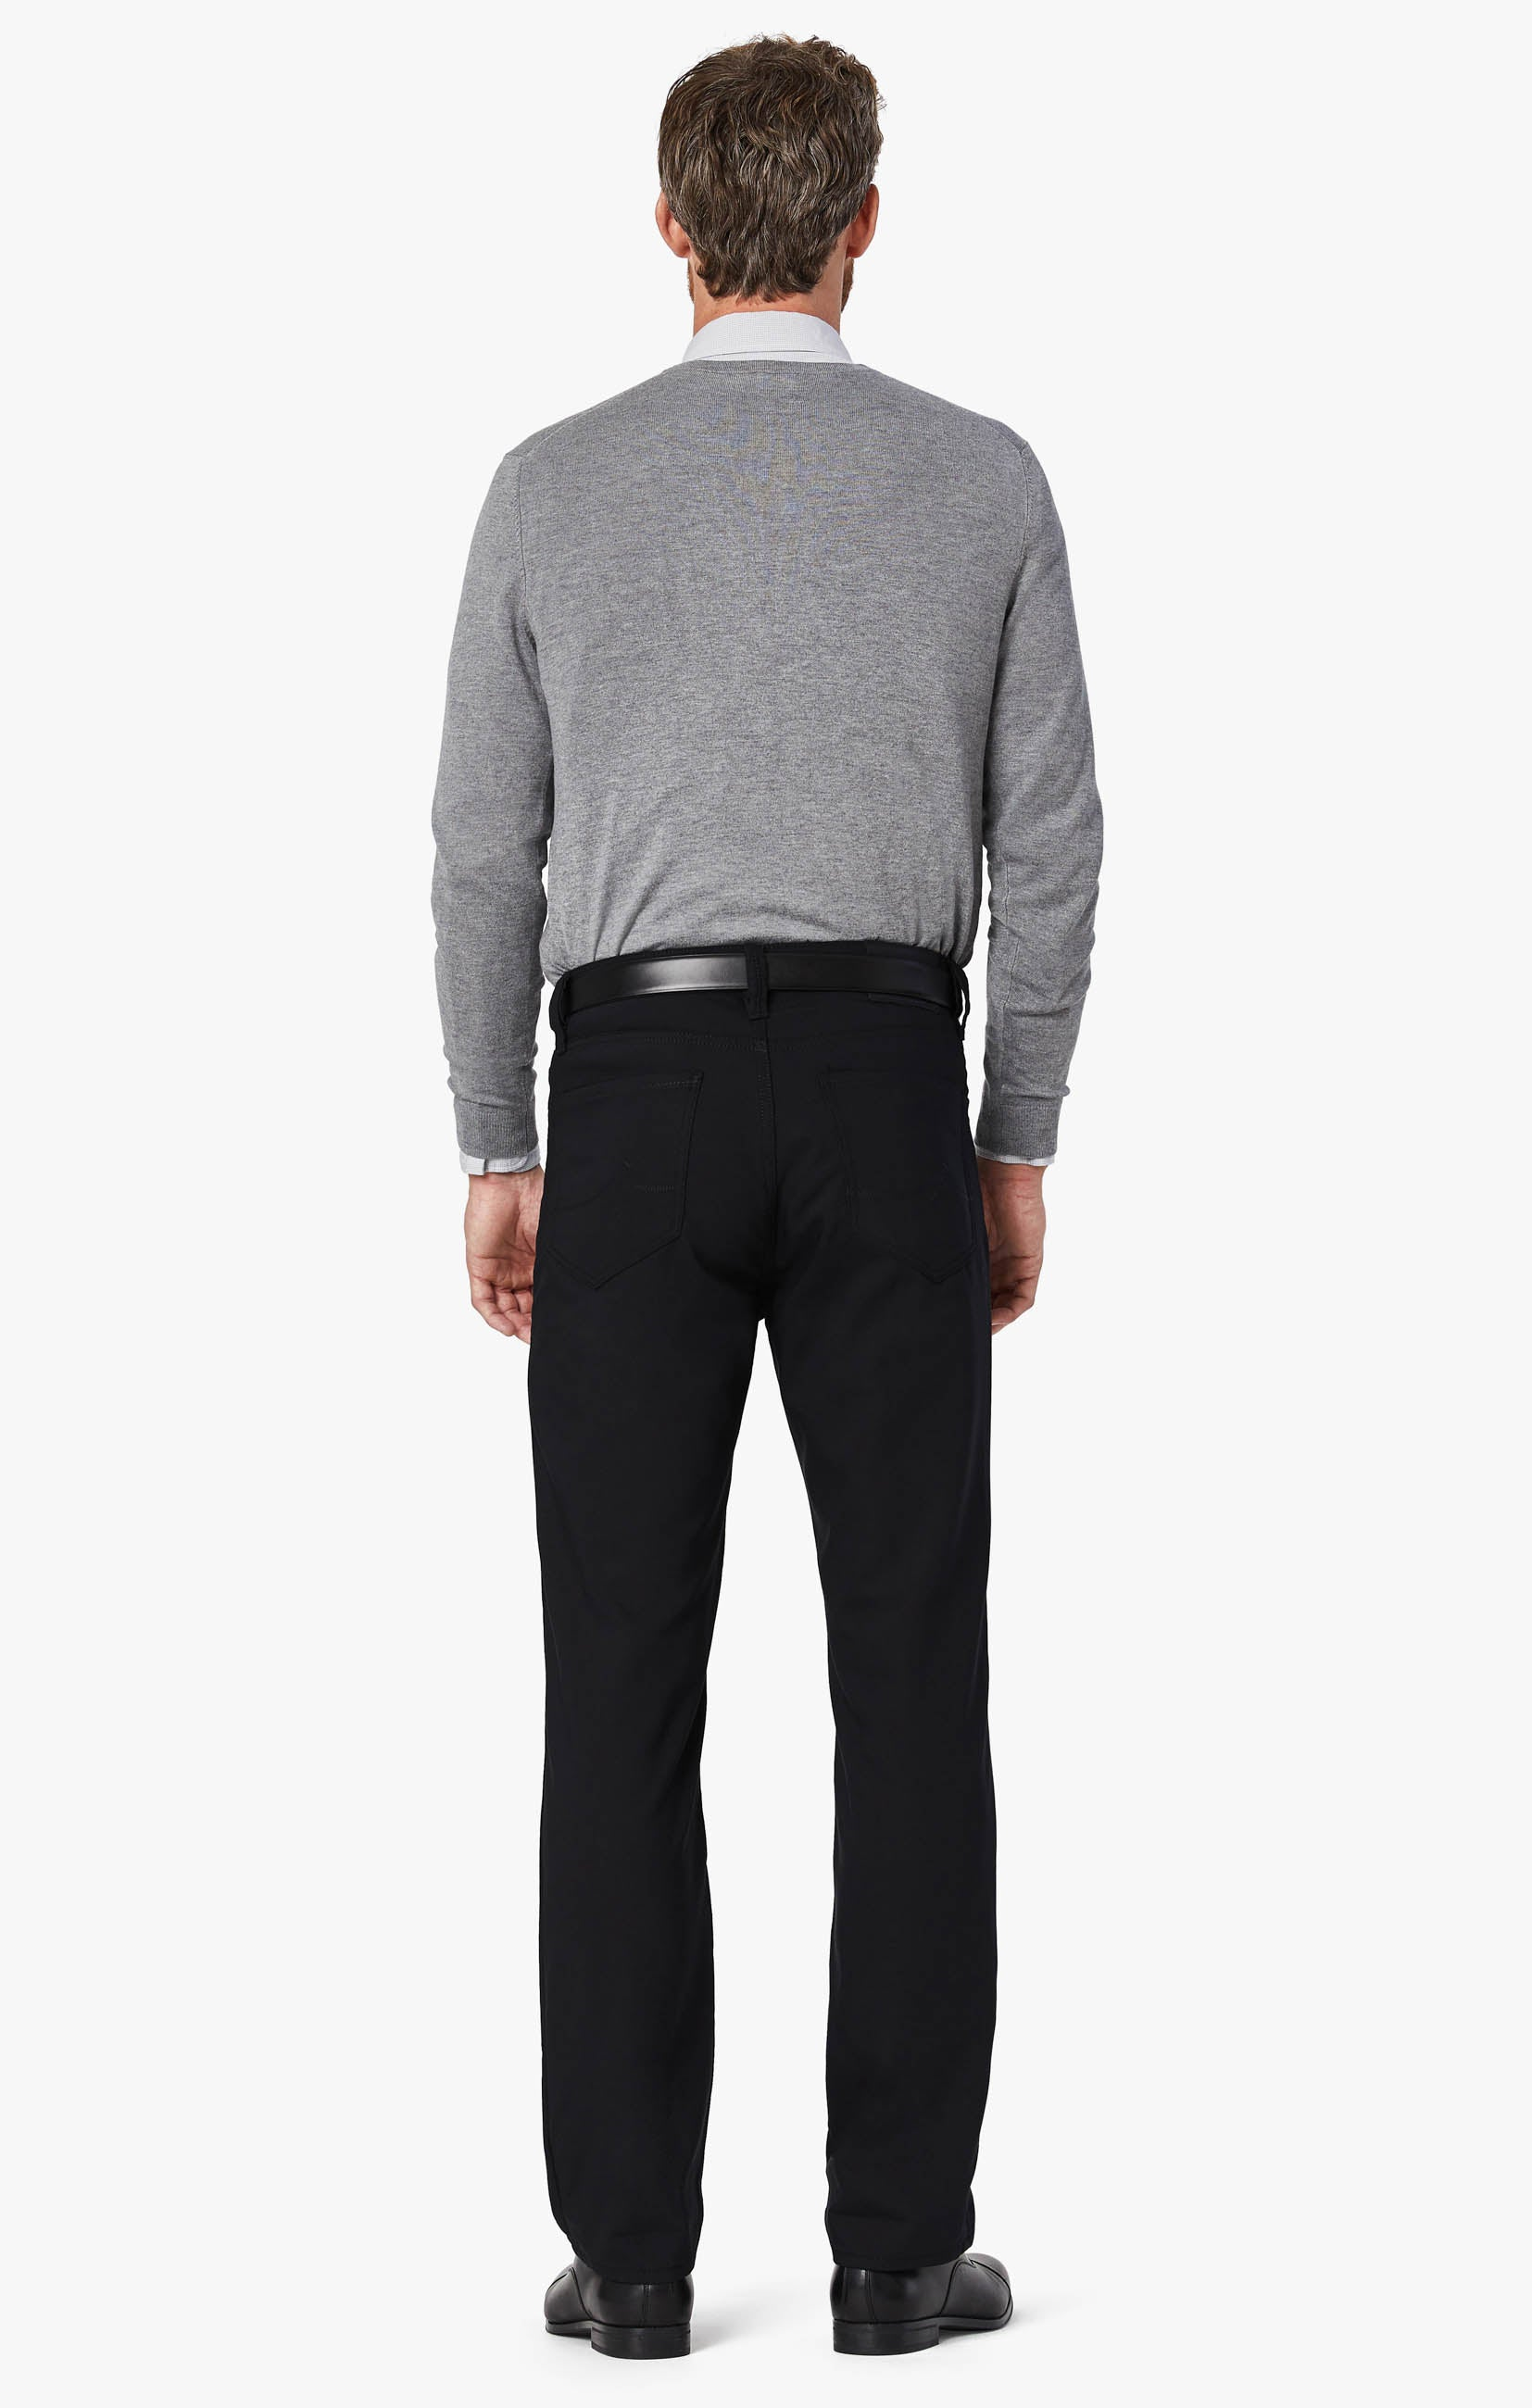 Charisma Classic Fit Commuter Pants In Onyx Image 7